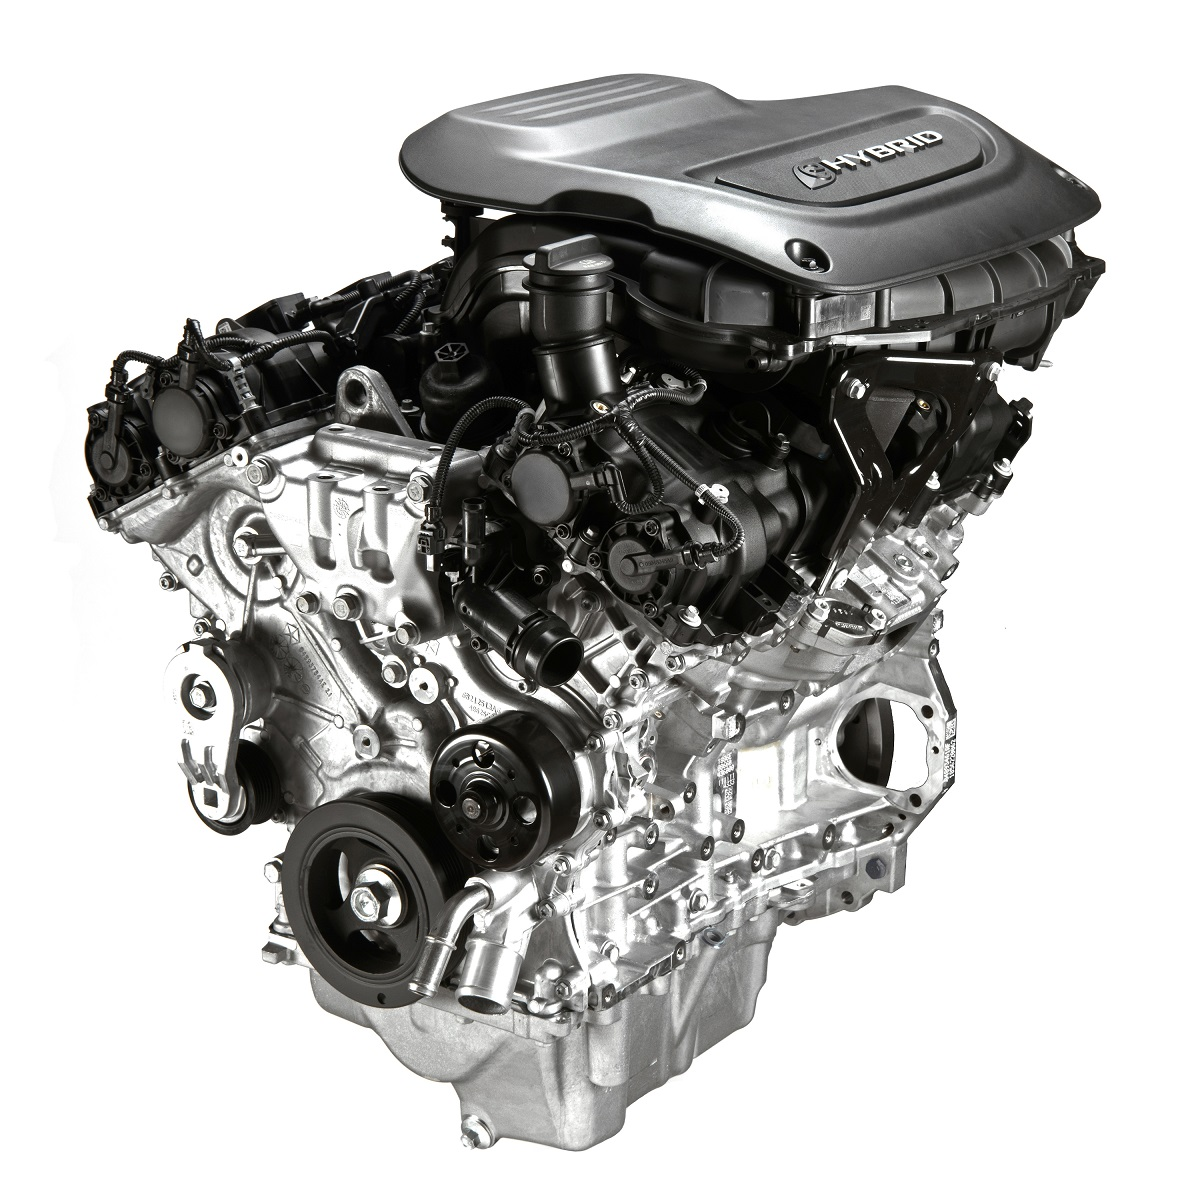 Chrysler Pacifica hybrid Pentastar engine